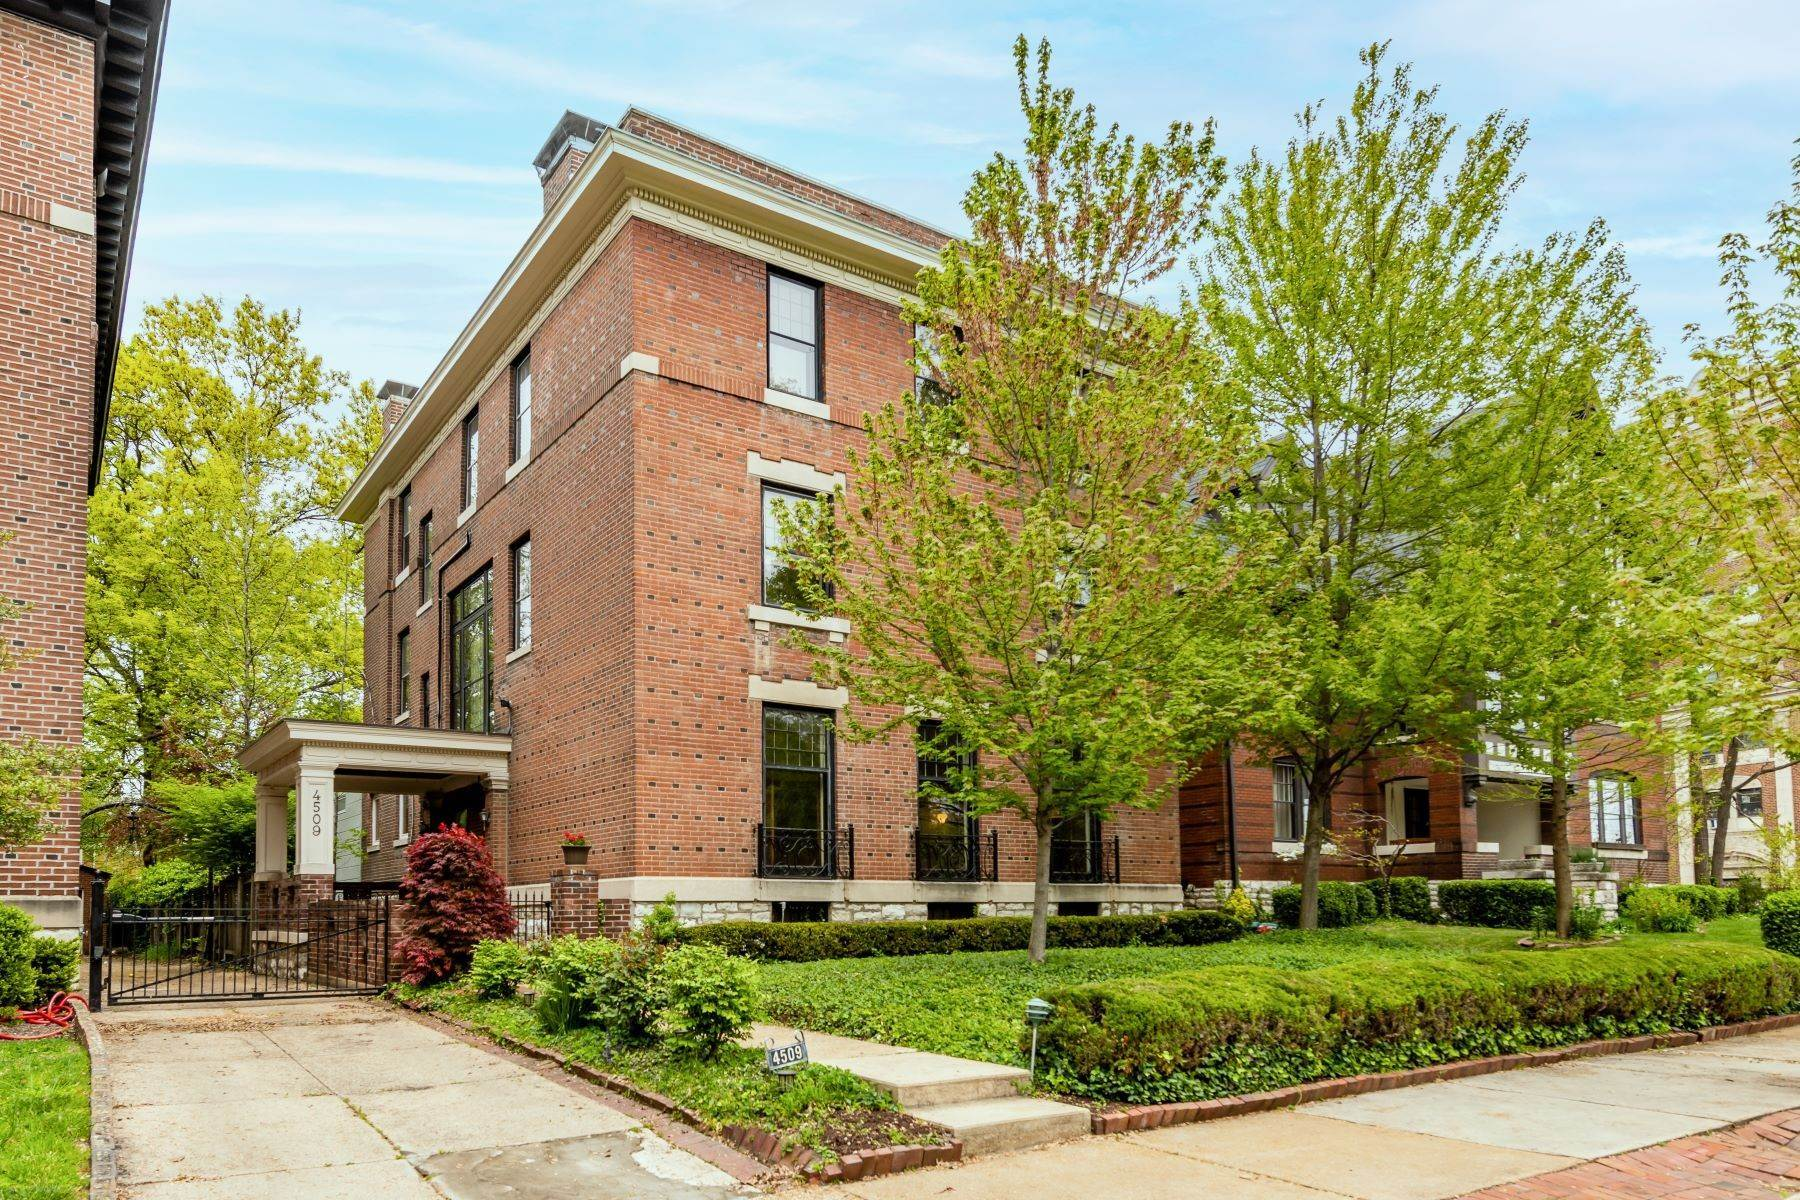 Single Family Homes for Sale at Three-Story Federal Home In CWE 4509 Pershing Place St. Louis, Missouri 63108 United States